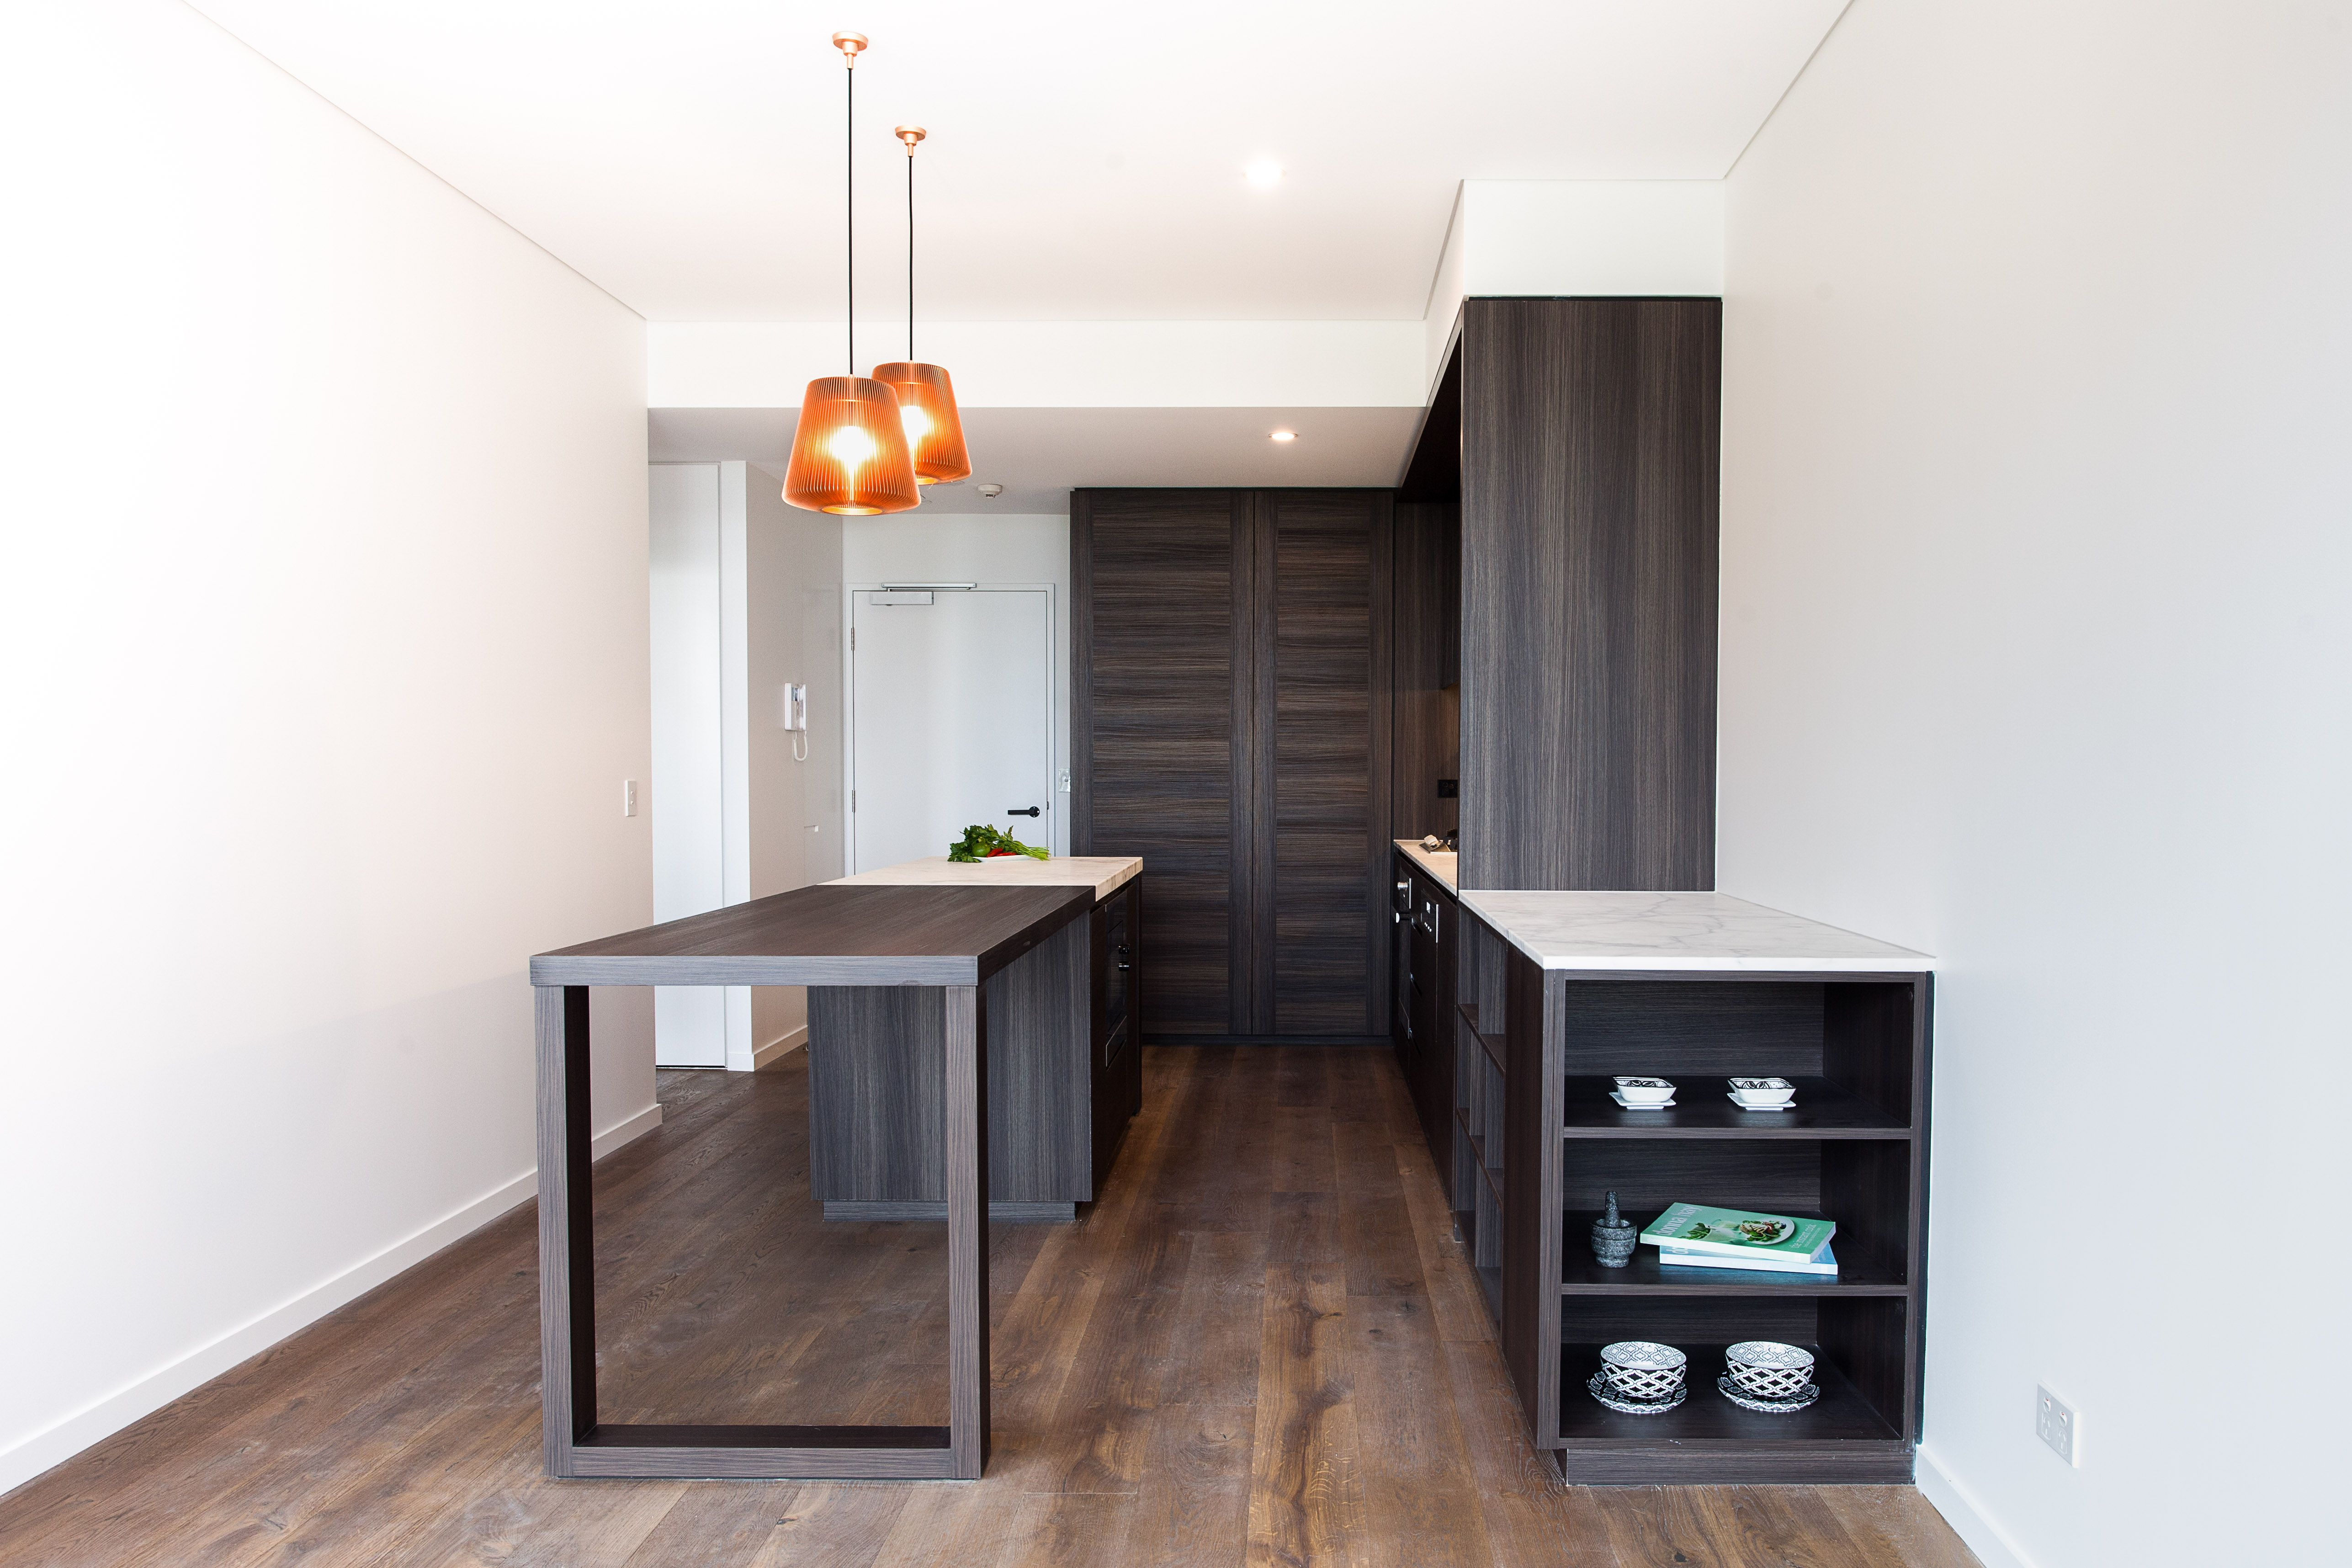 navurban hamilton this stunning kitchen is part of the mona navurban hamilton this stunning kitchen is part of the mona vale project by bates smart navurban is an amazing cost effective product that is perfect